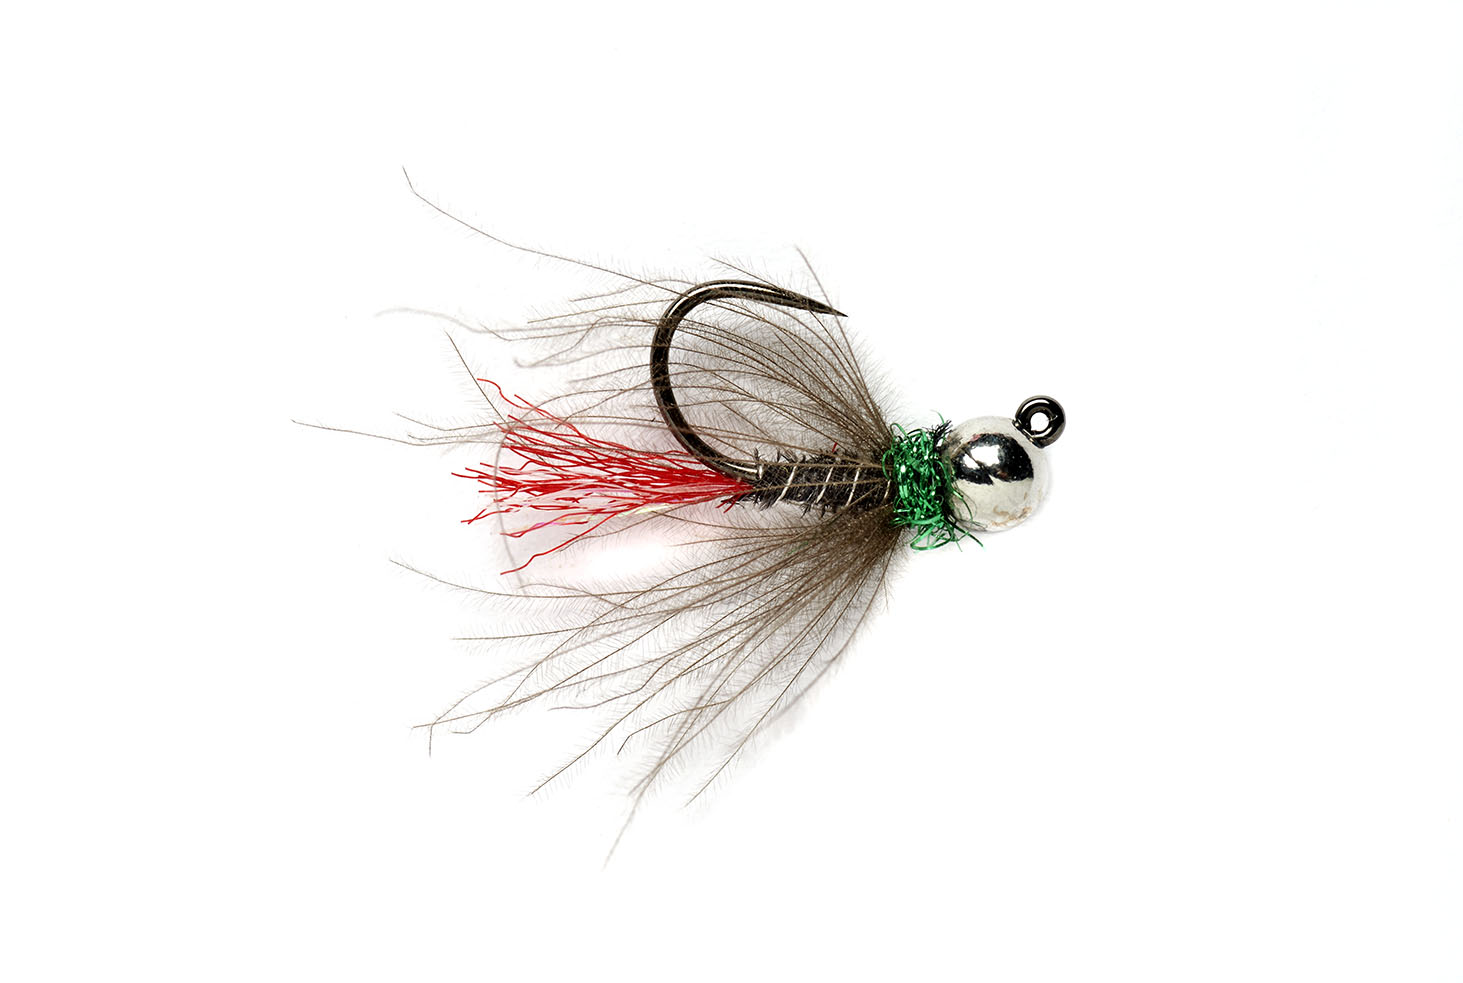 Red Tag Jig Black (TBH) Barbless